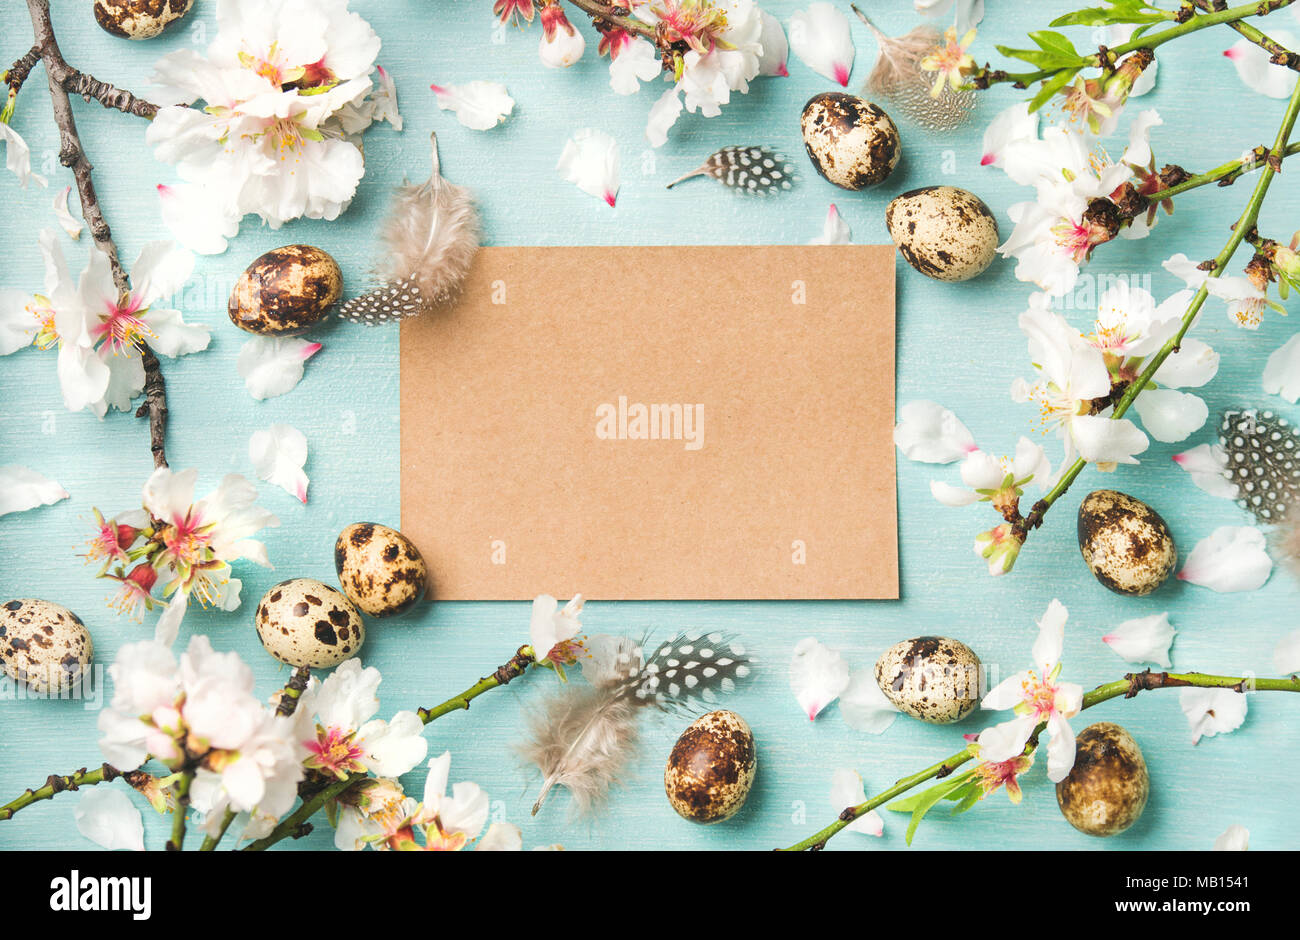 Easter holiday background. Flat-lay of tender Spring almond blossom flowers on branches, feathers, quail eggs and paper in center over blue background - Stock Image